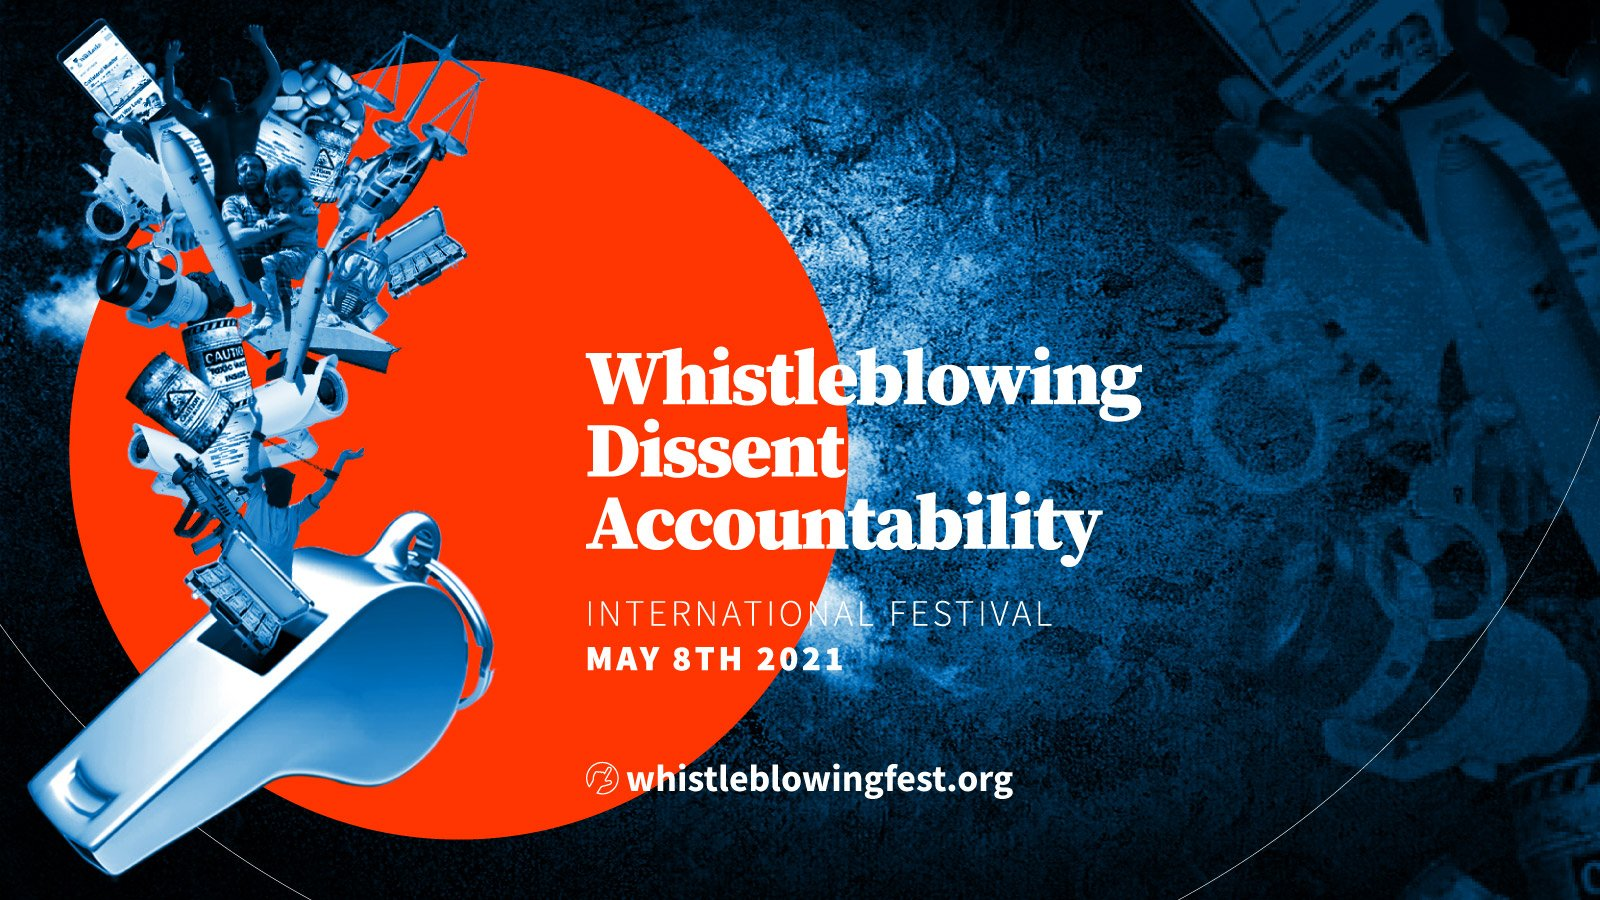 Attend the International Festival of Whistleblowing, Dissent and Accountability this weekend (May 8)